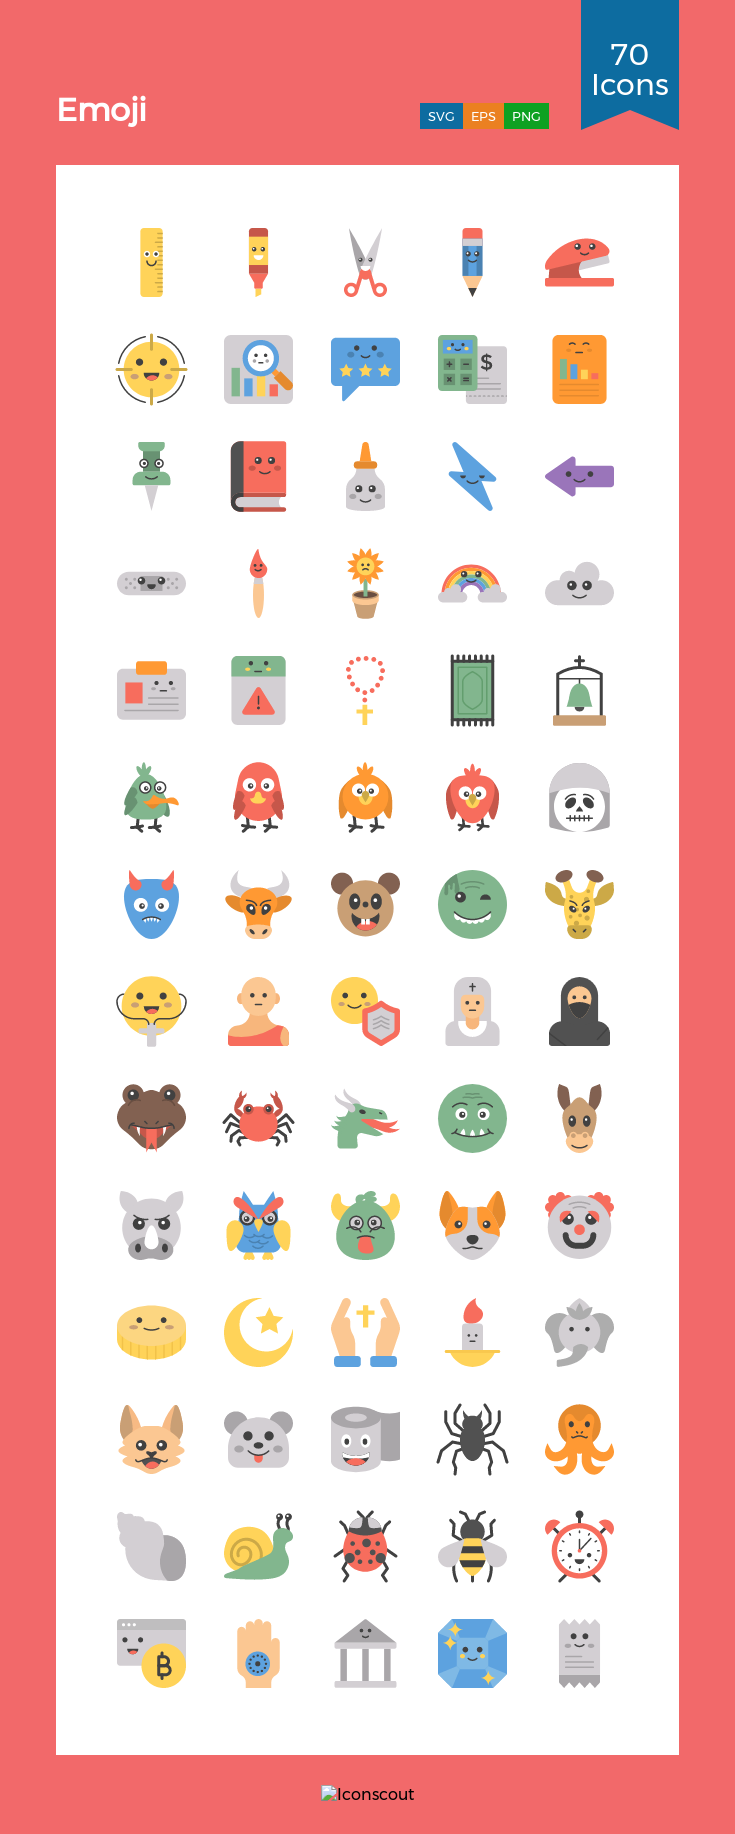 Download Emoji Icon Pack Available In Svg Png Eps Ai Icon Fonts Icon Pack Icon Bee Icon